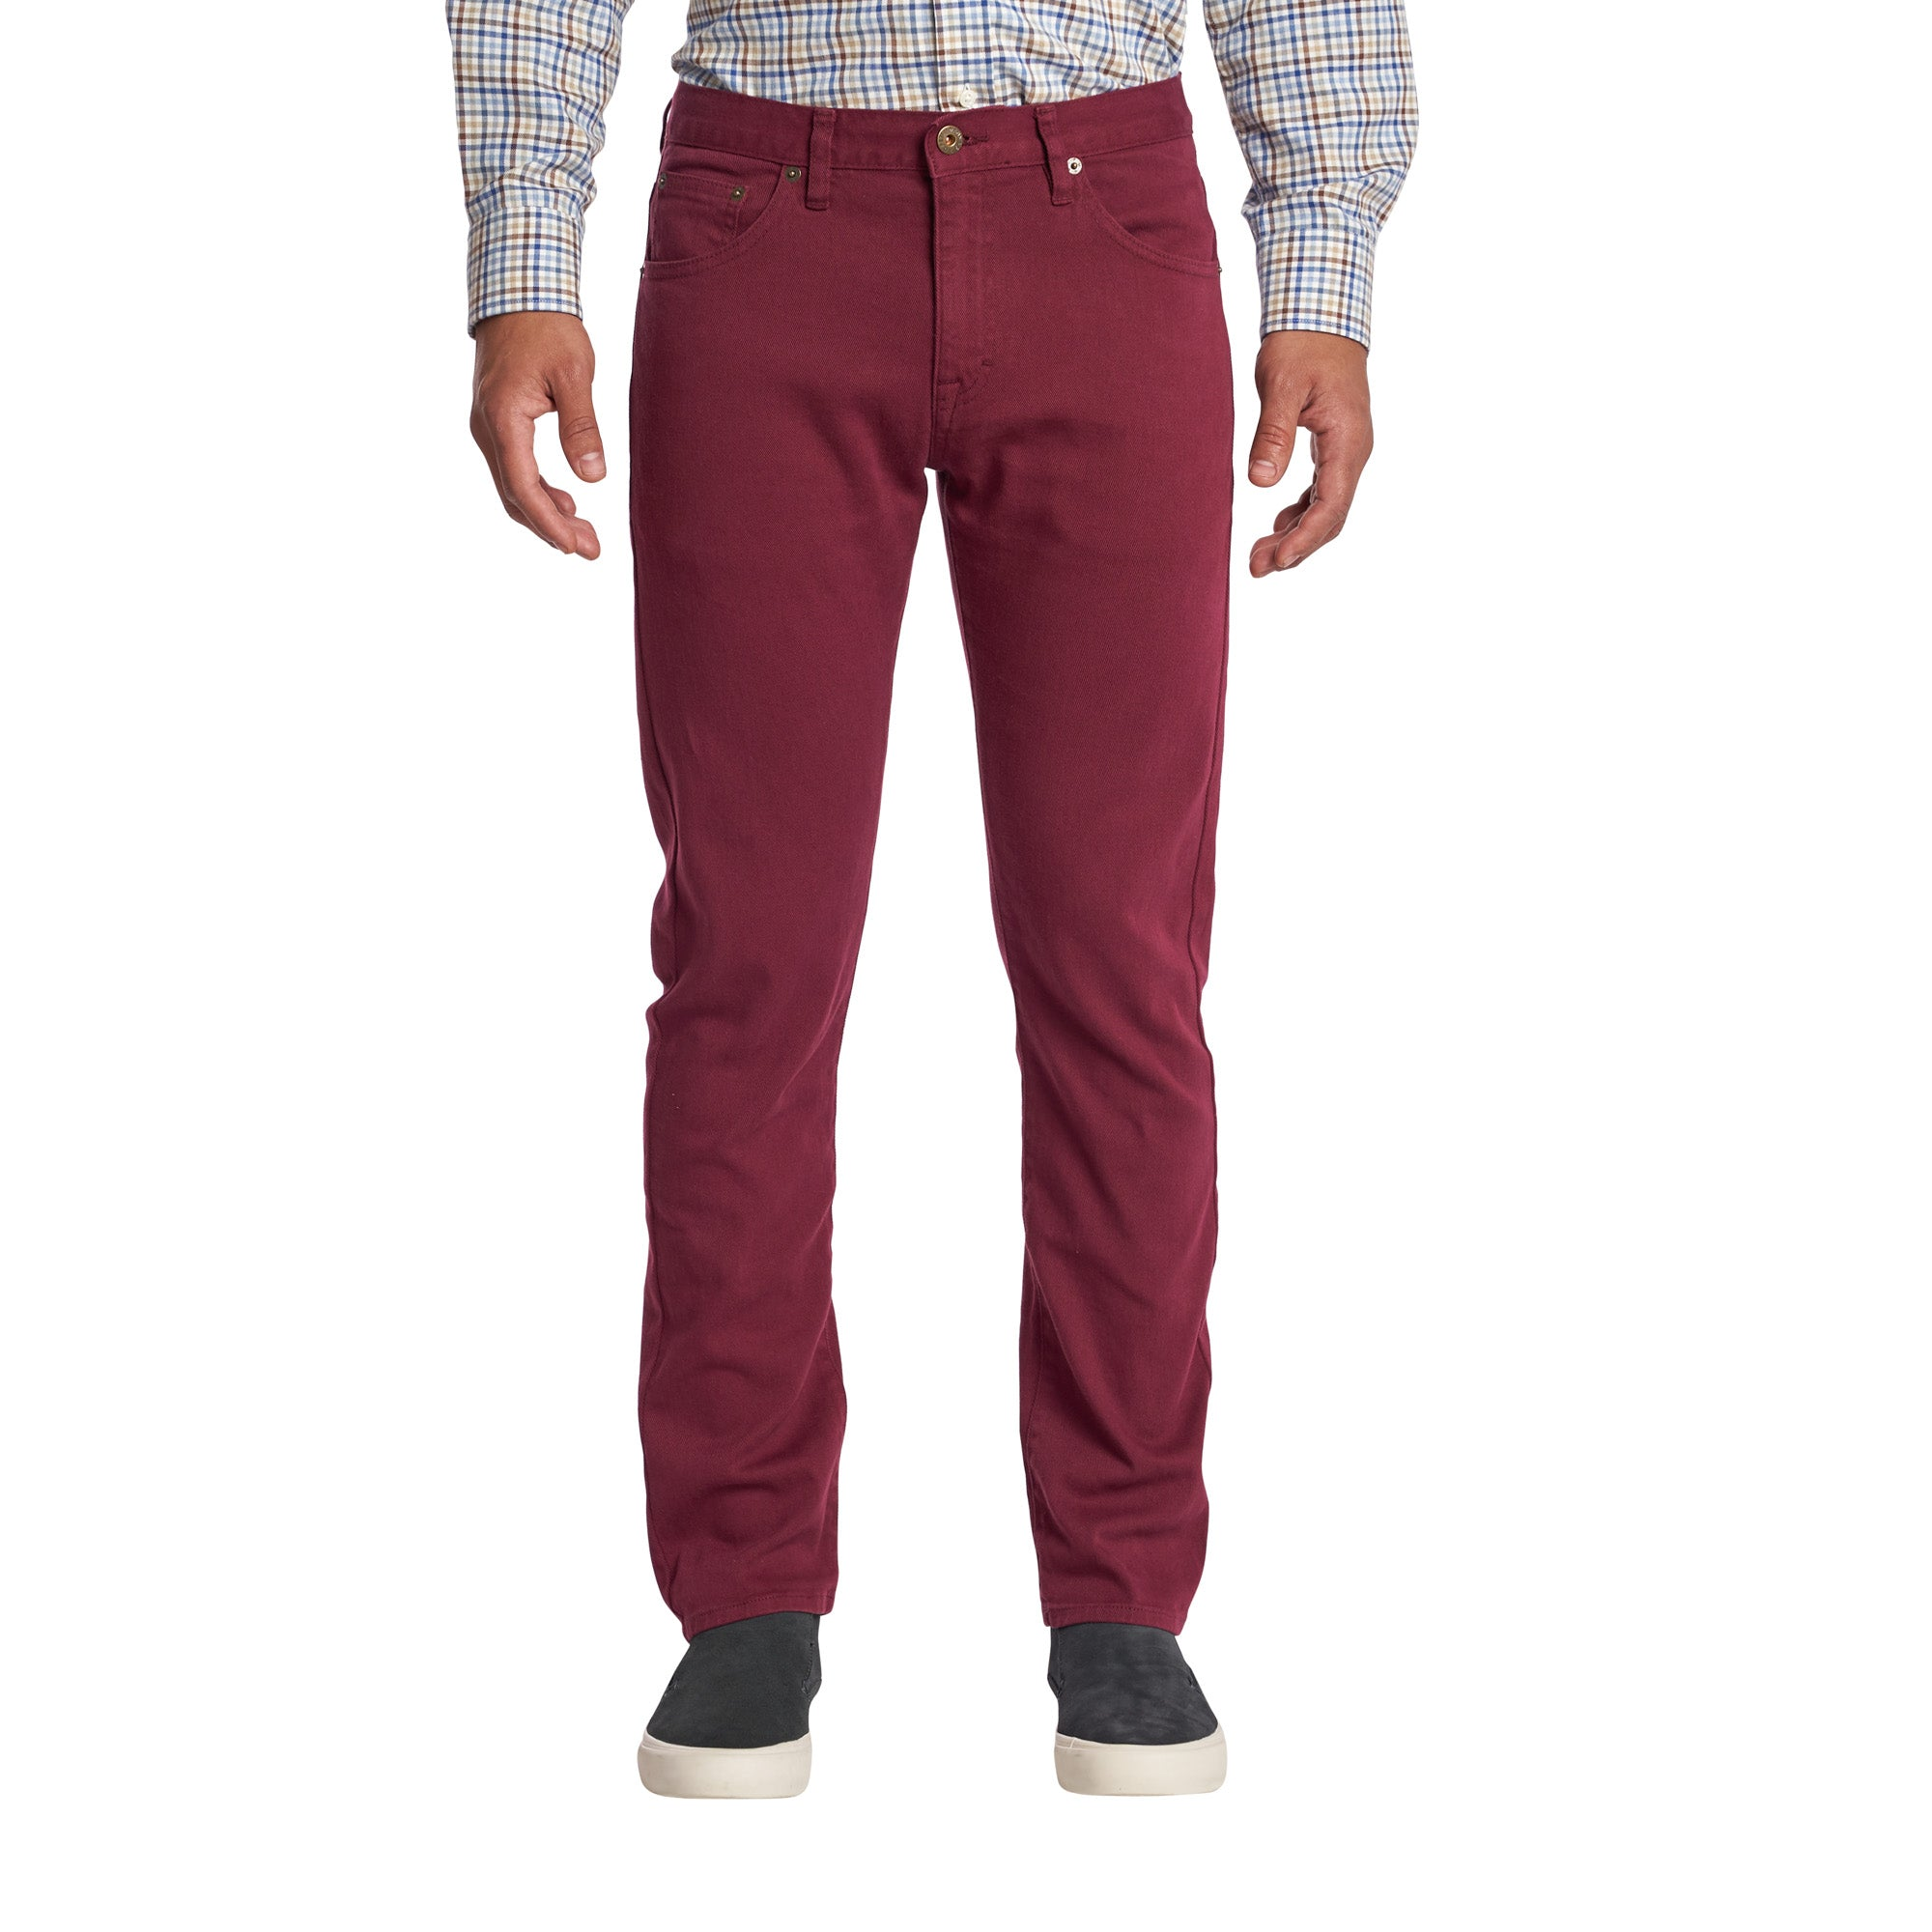 Travel Jeans - Burgundy